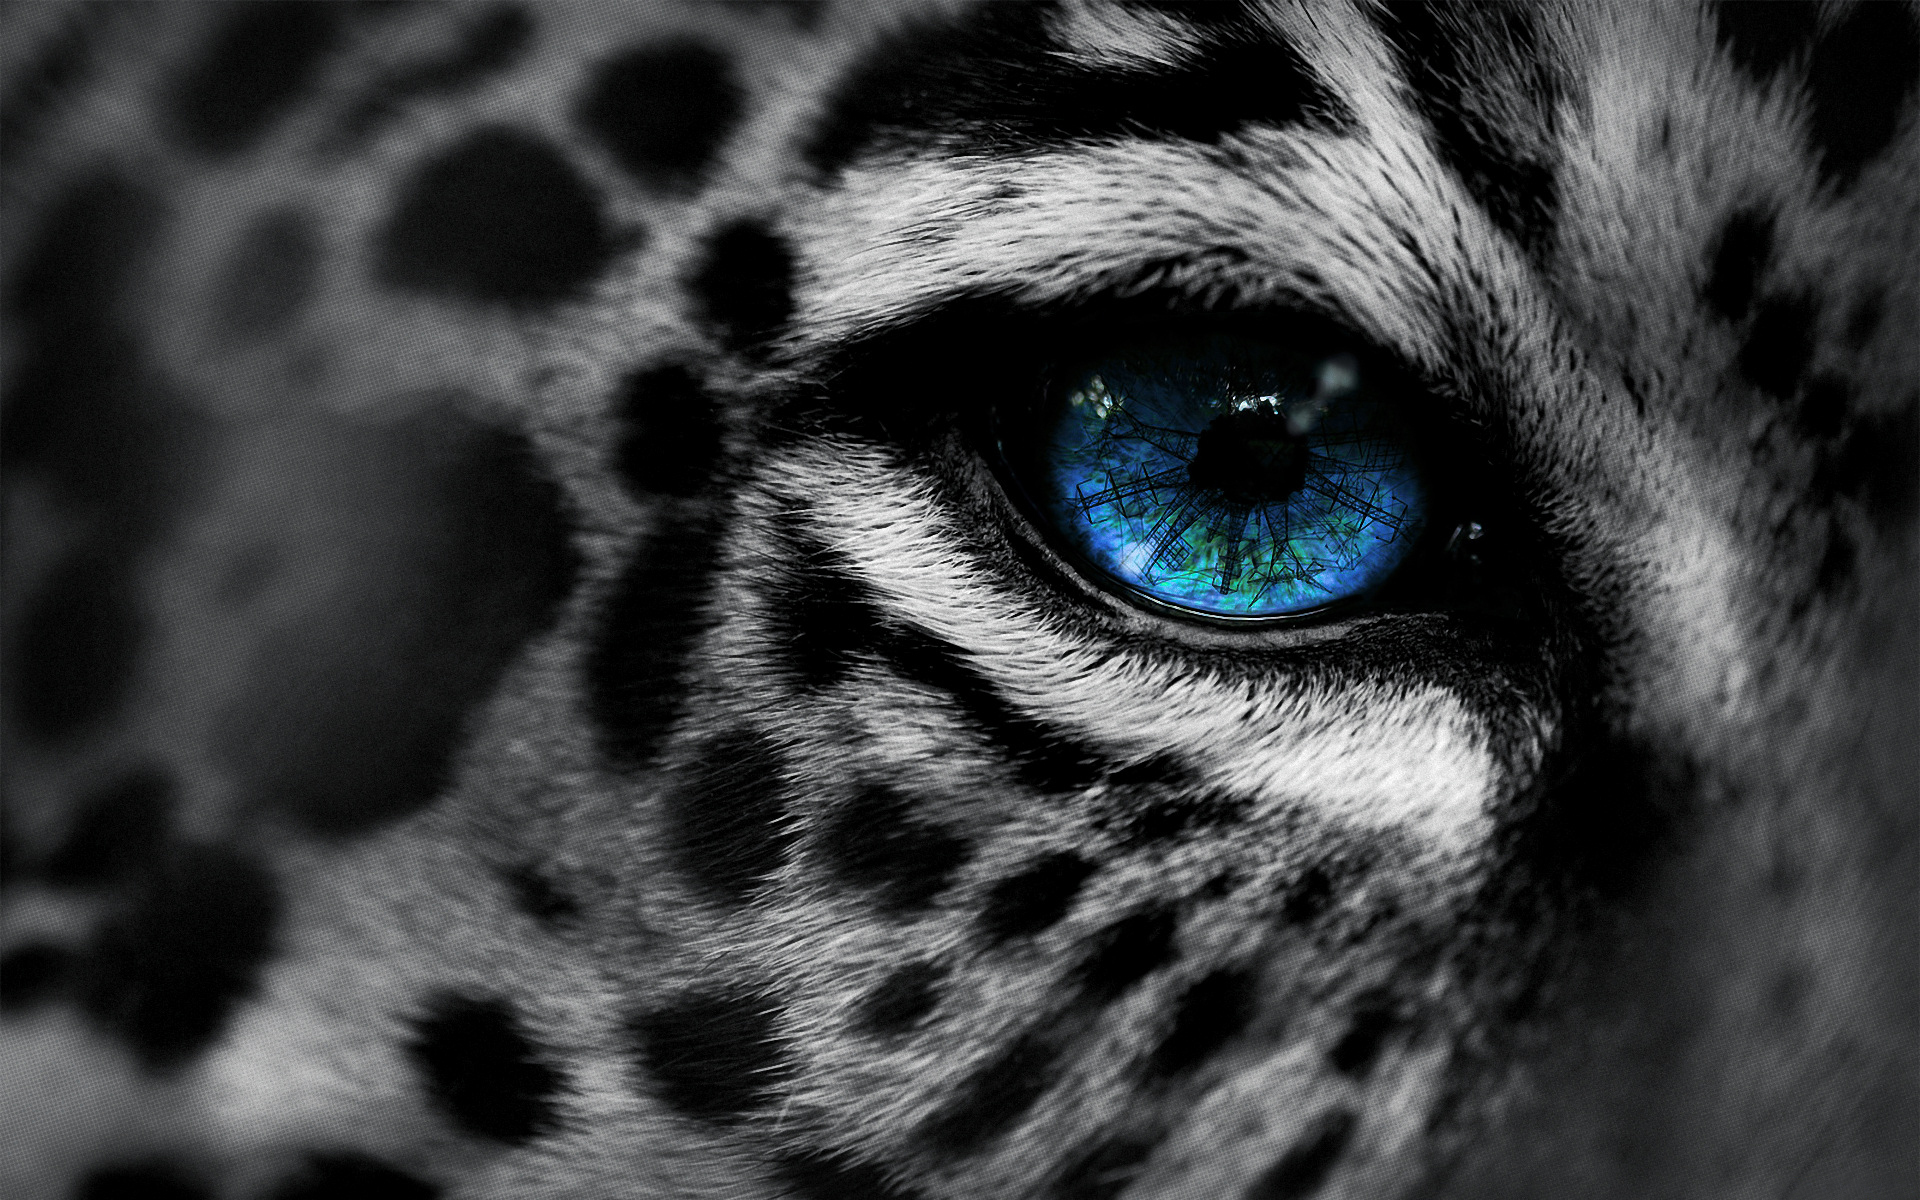 Leopard Wallpaper Blue Eyes - HD Desktop Wallpapers